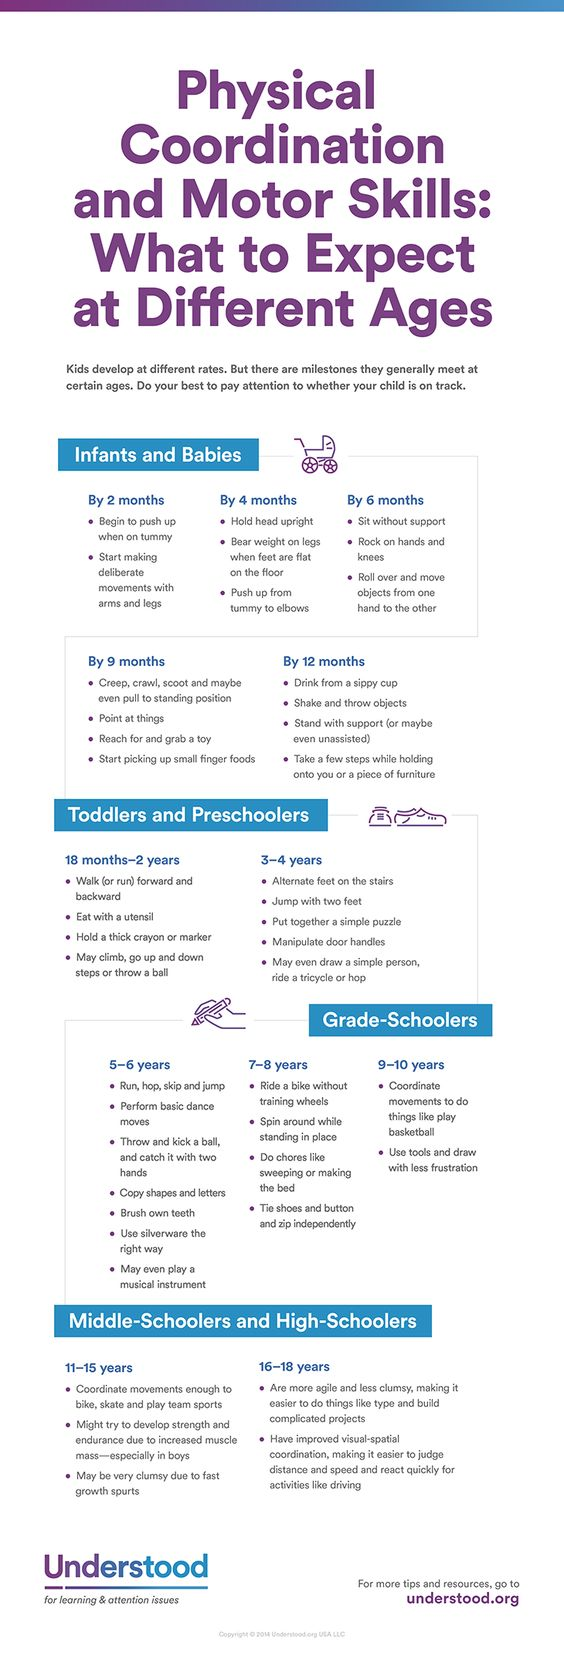 Kids physically develop at slightly different rates. There are, however, milestones to watch for at certain ages. Keeping track of your child's progress in physical coordination at different ages can help reveal potential issues.